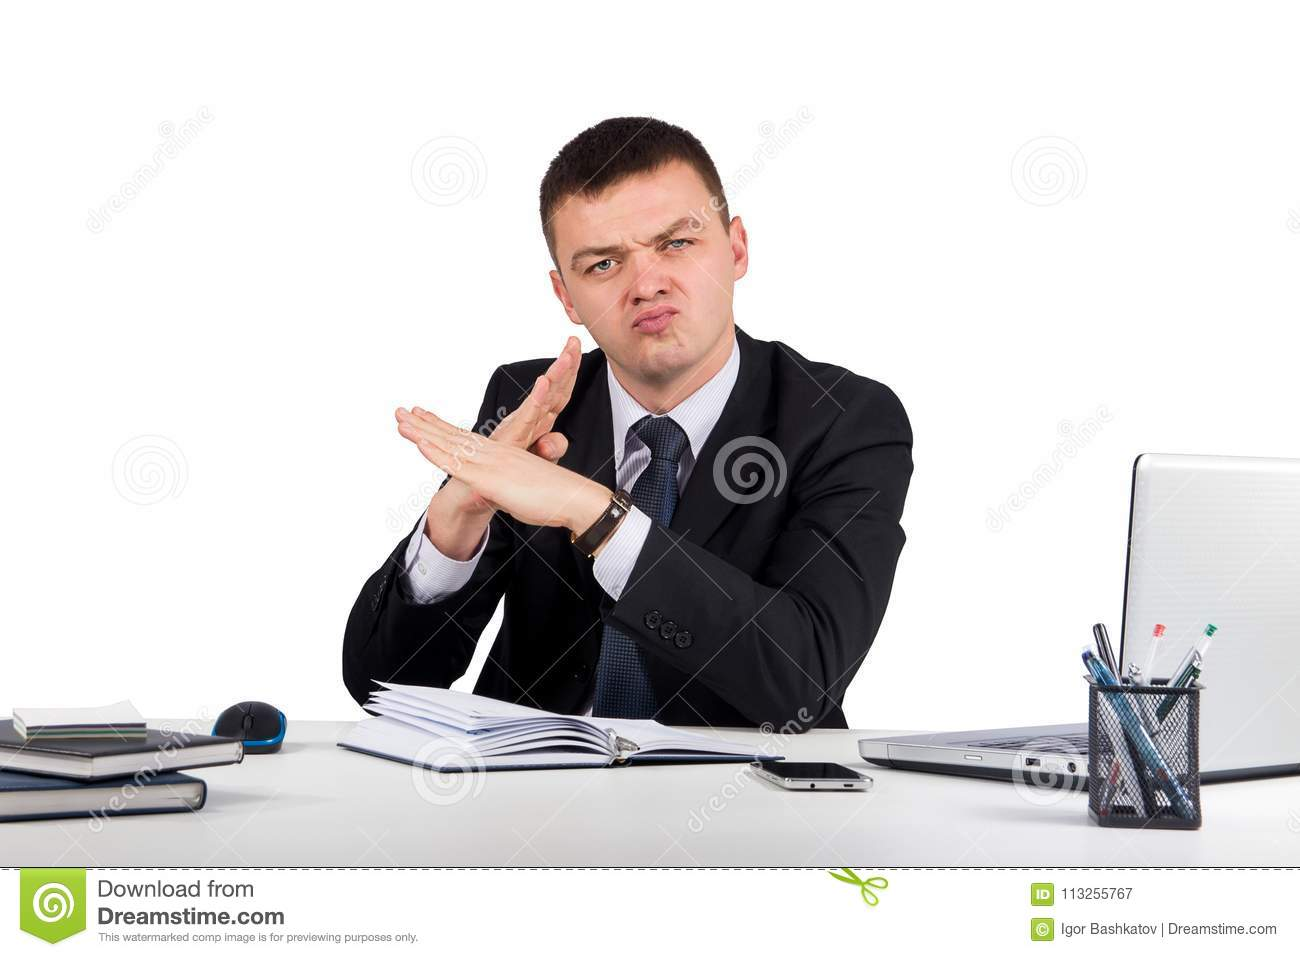 Businessman making X sign isolated on white background.businessman making NO gesture